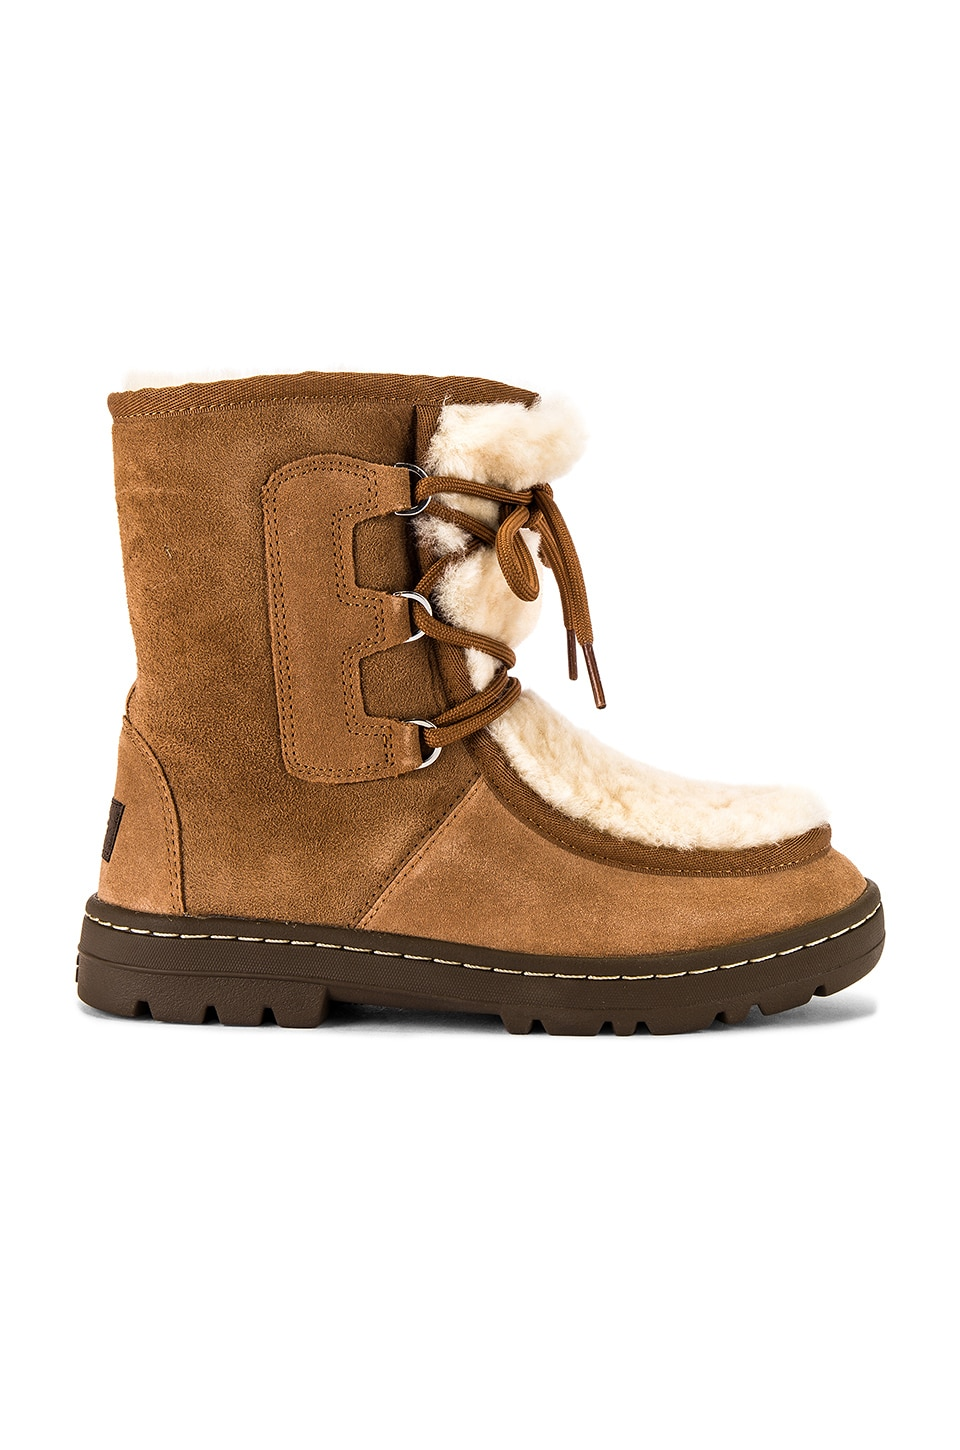 Ugg Boots Mukluk Revival Boot